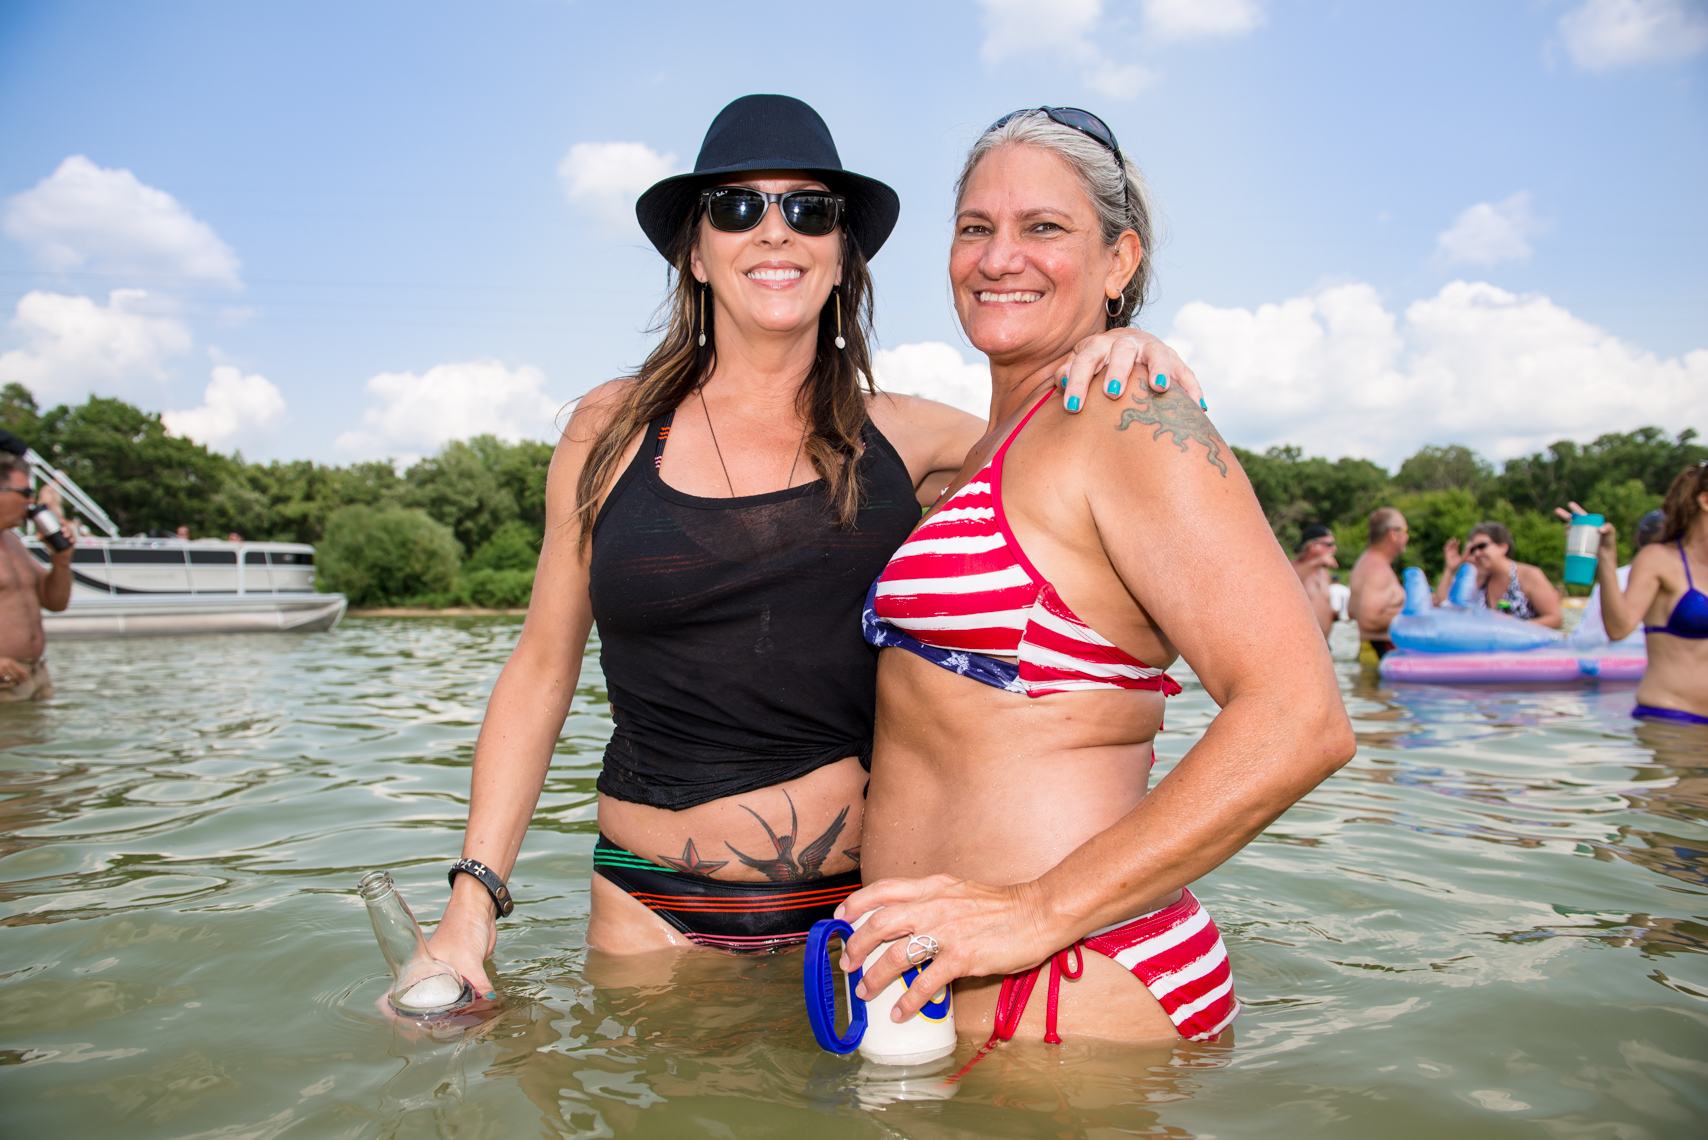 Two women at a lake party, swim suit, beer, hat, coozie, real beauty, real people, boats, friends, reportage, lake party, summer fun, beverage, swimming, swim, suit, bathing, confident, summer fun, liquor, travel, Madison, Chicago, Nashville advertising,